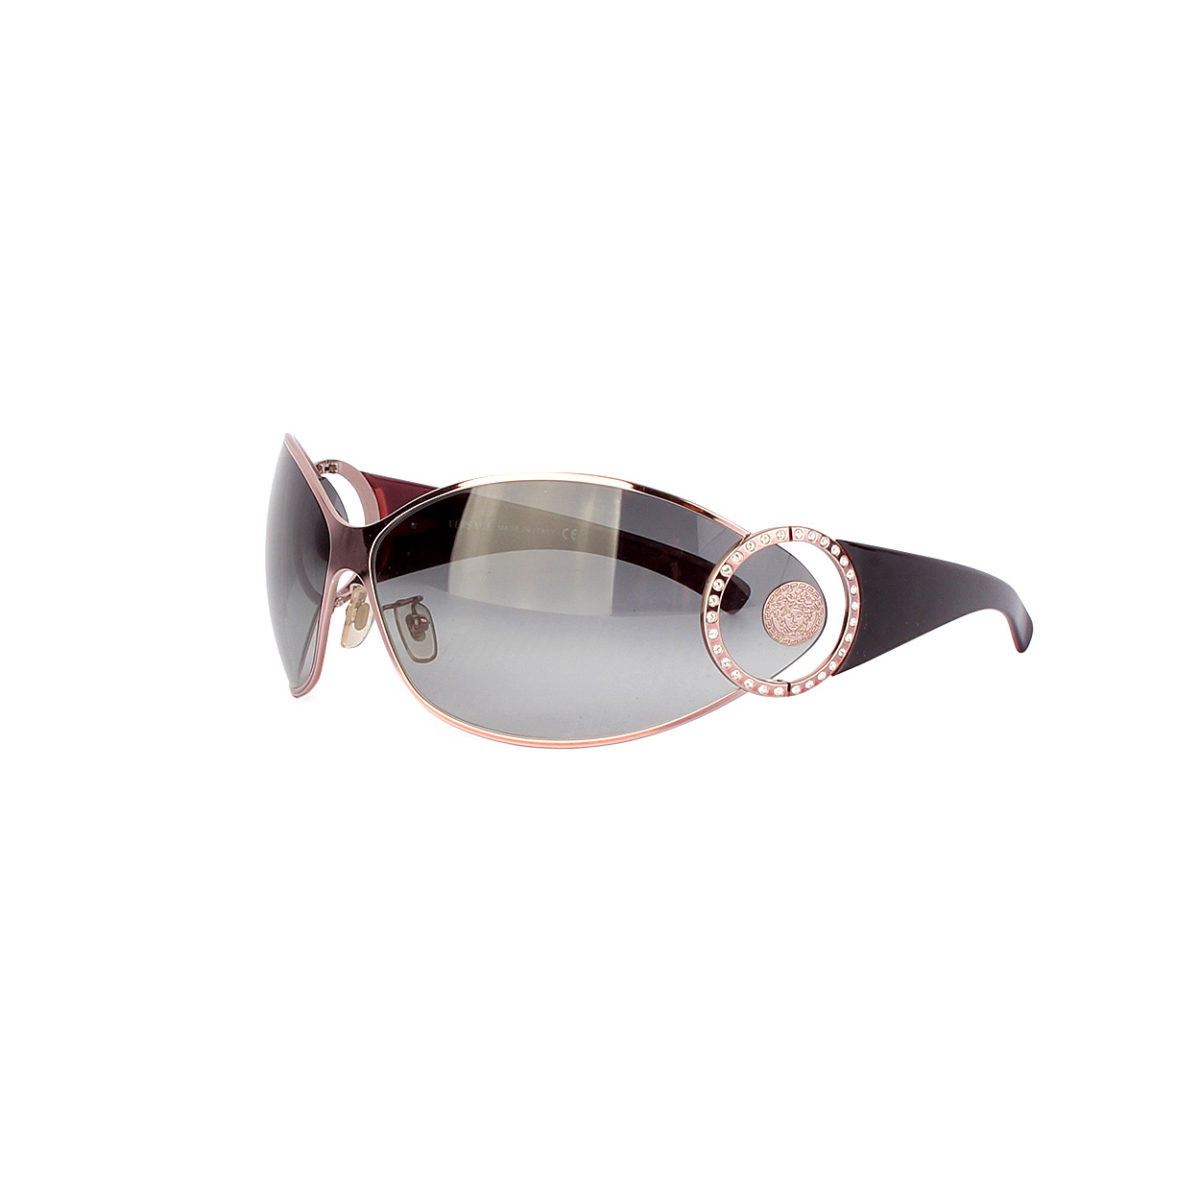 1c9c109121950 VERSACE Sunglasses Black Pink Frames with Crystals 2064-B